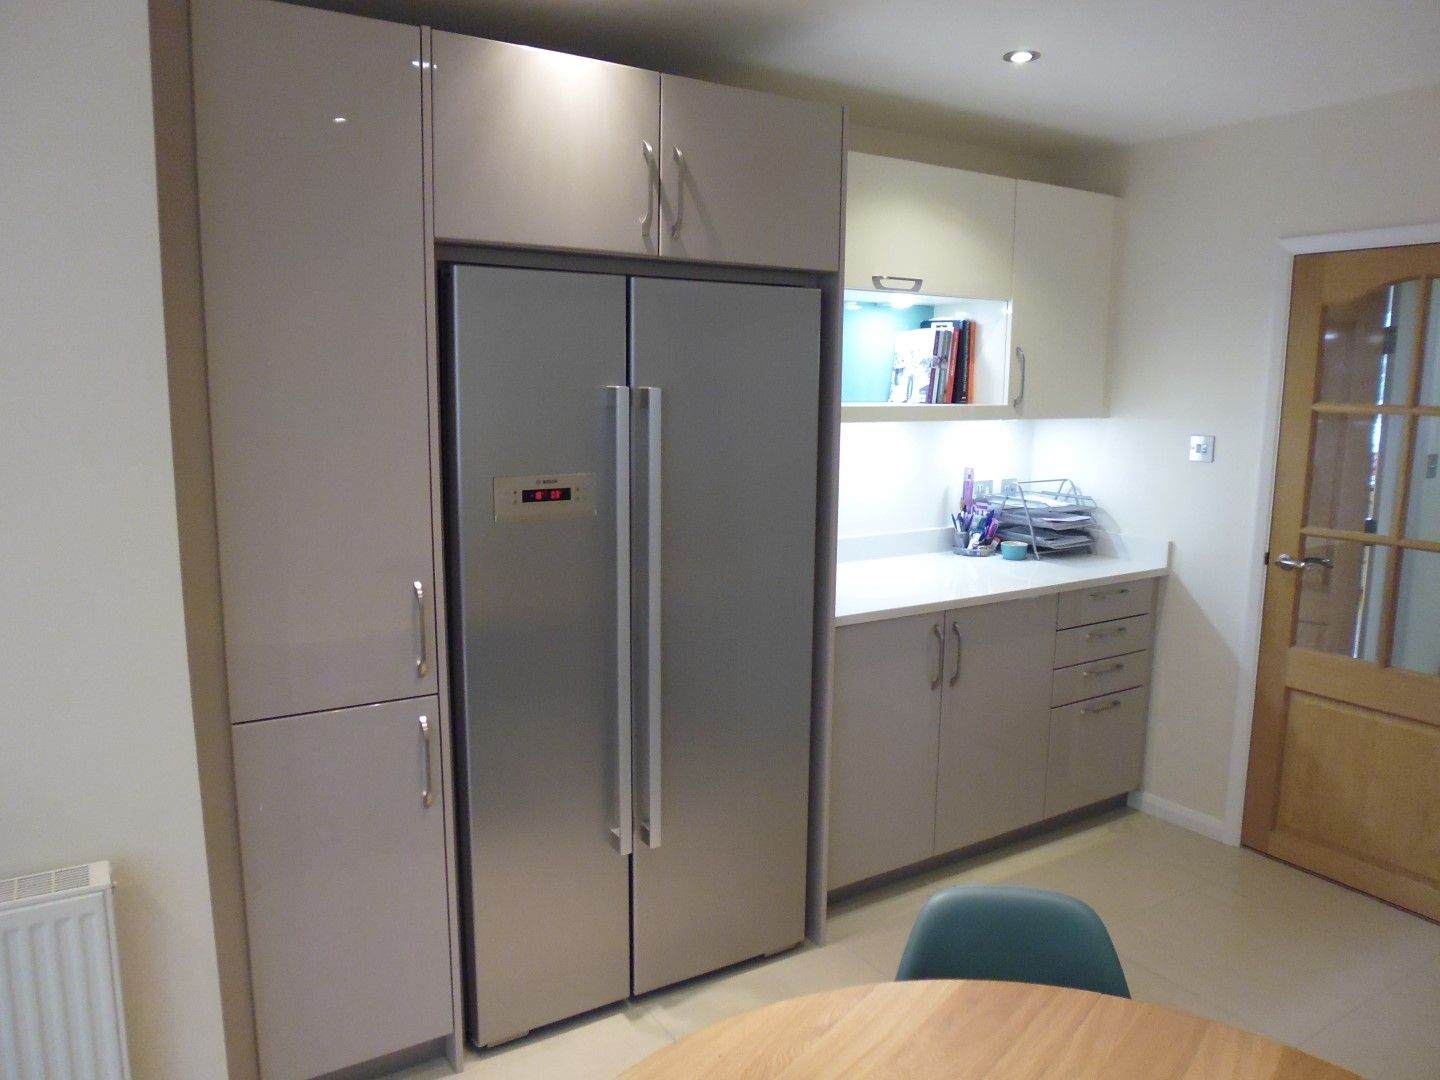 Best Modern Kitchen Fridge Freezer Google Search Apartment 400 x 300